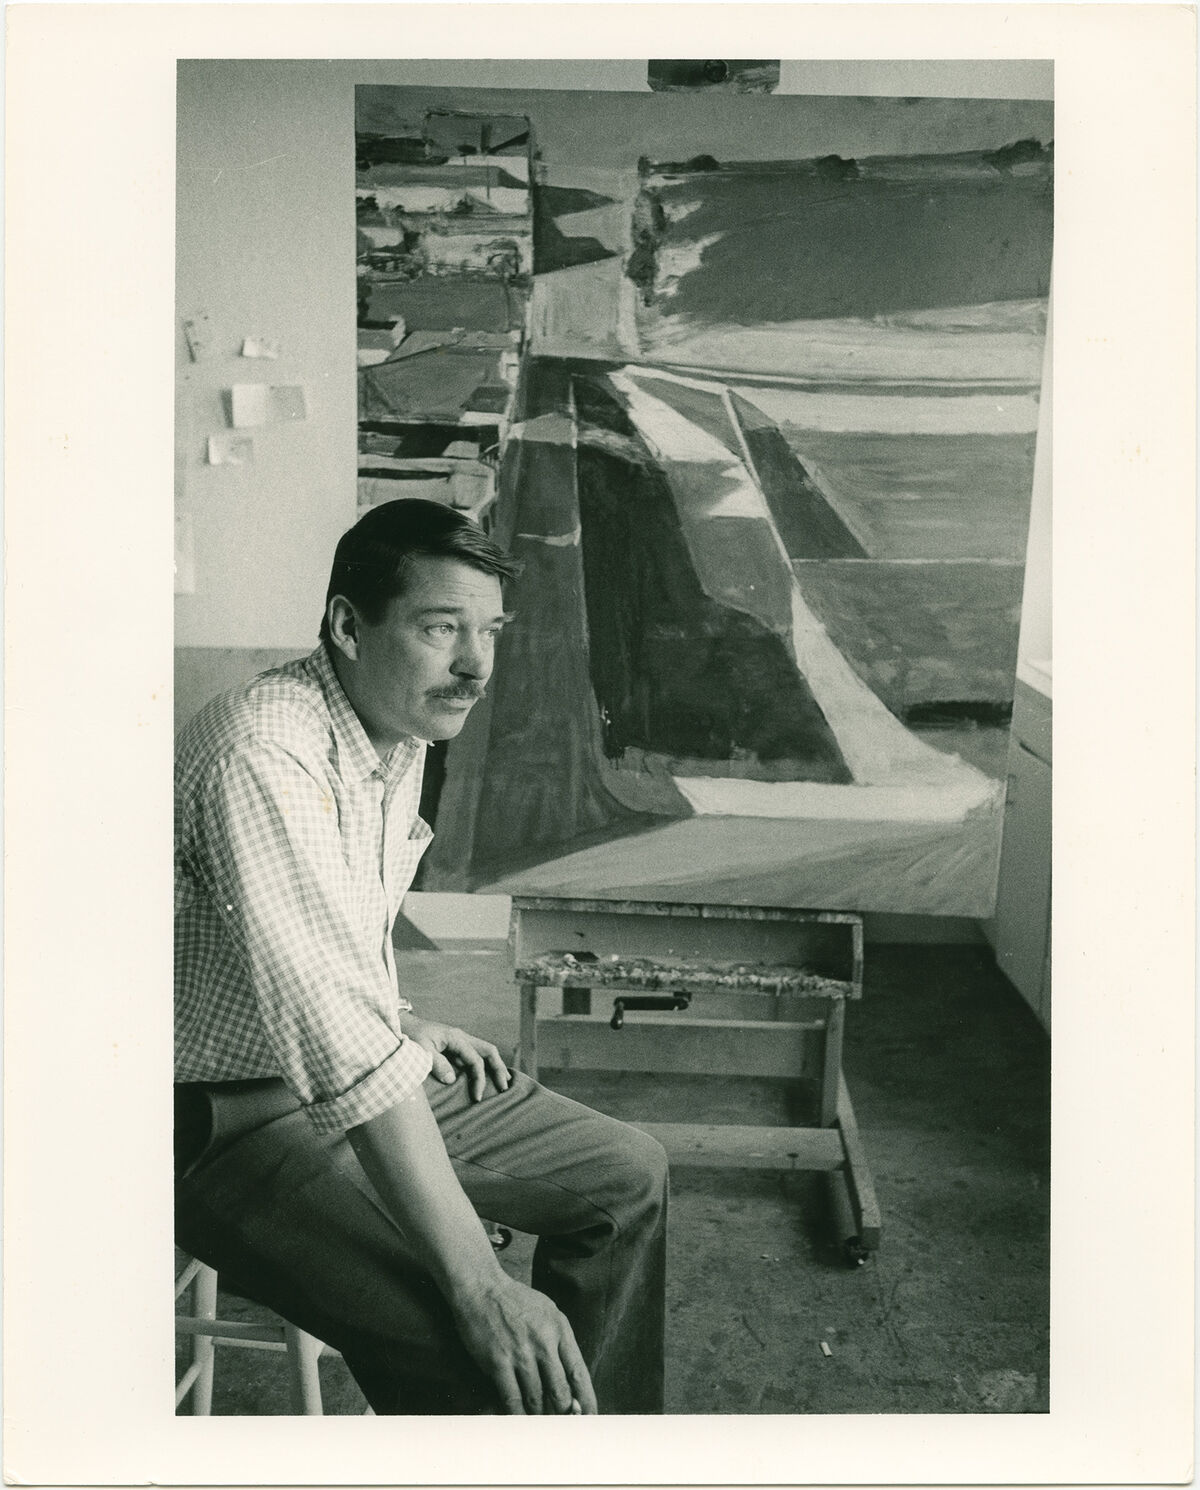 Richard Diebenkorn with his painting Cityscape #1 , in his studio at Stanford University, 1963. Photograph by Leo Holub. Courtesy of The Richard Diebenkorn Foundation.